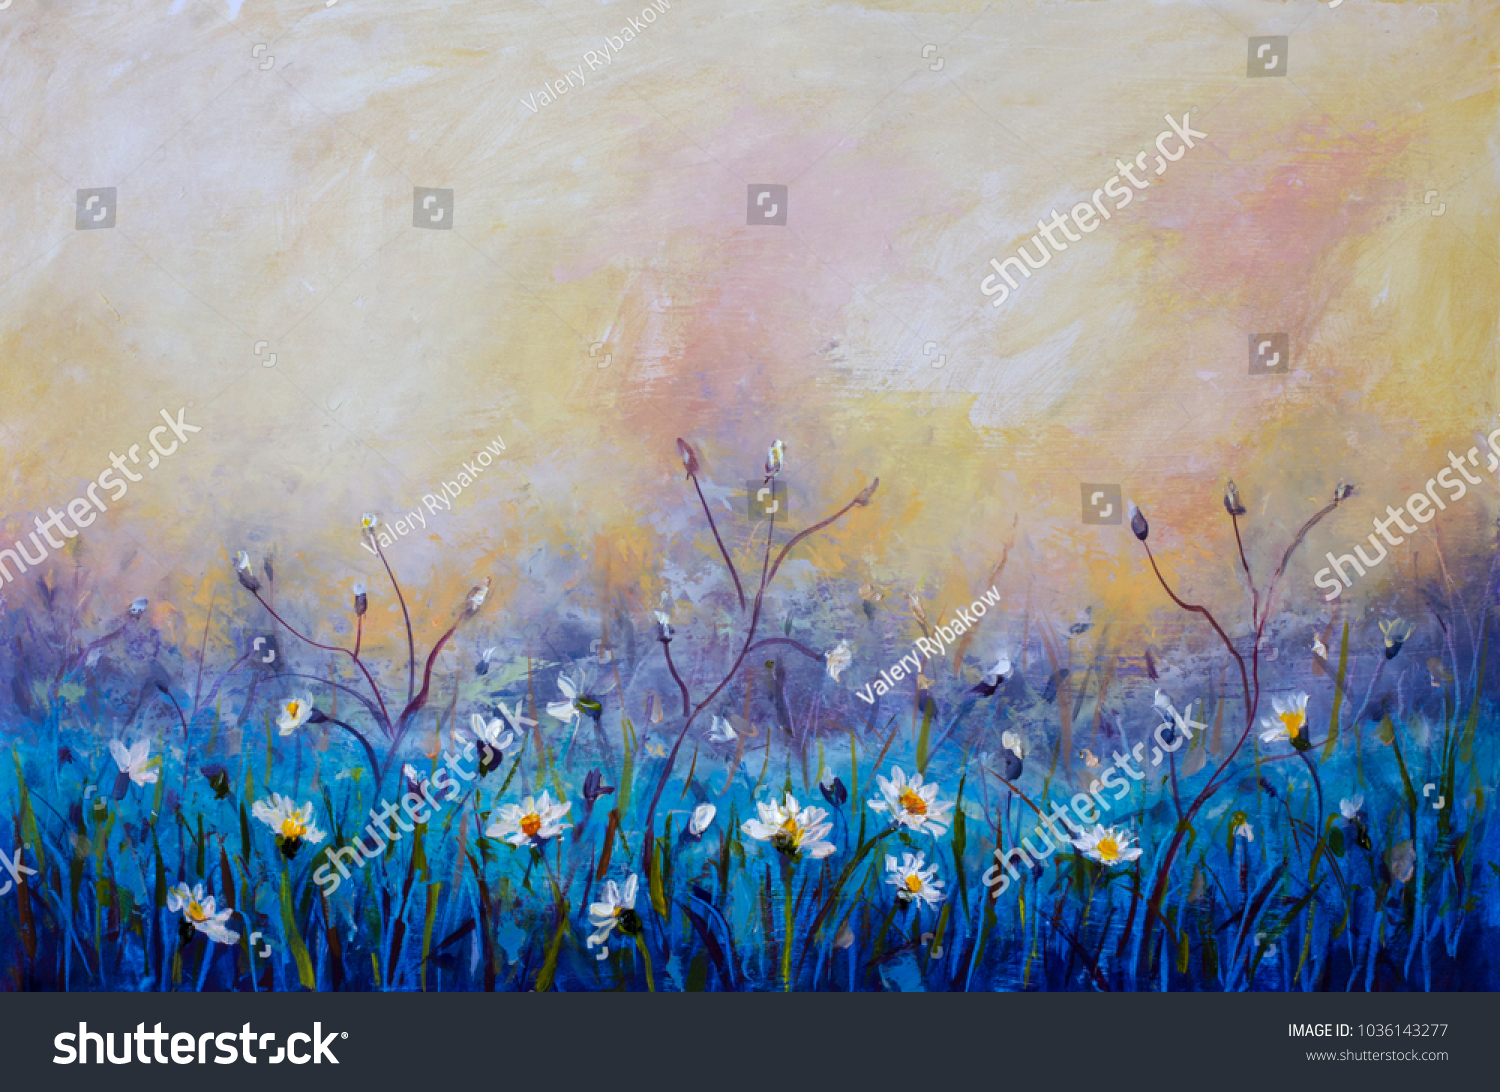 Flowers Oil Painting Wildflowers Chamomile Small Stock Illustration